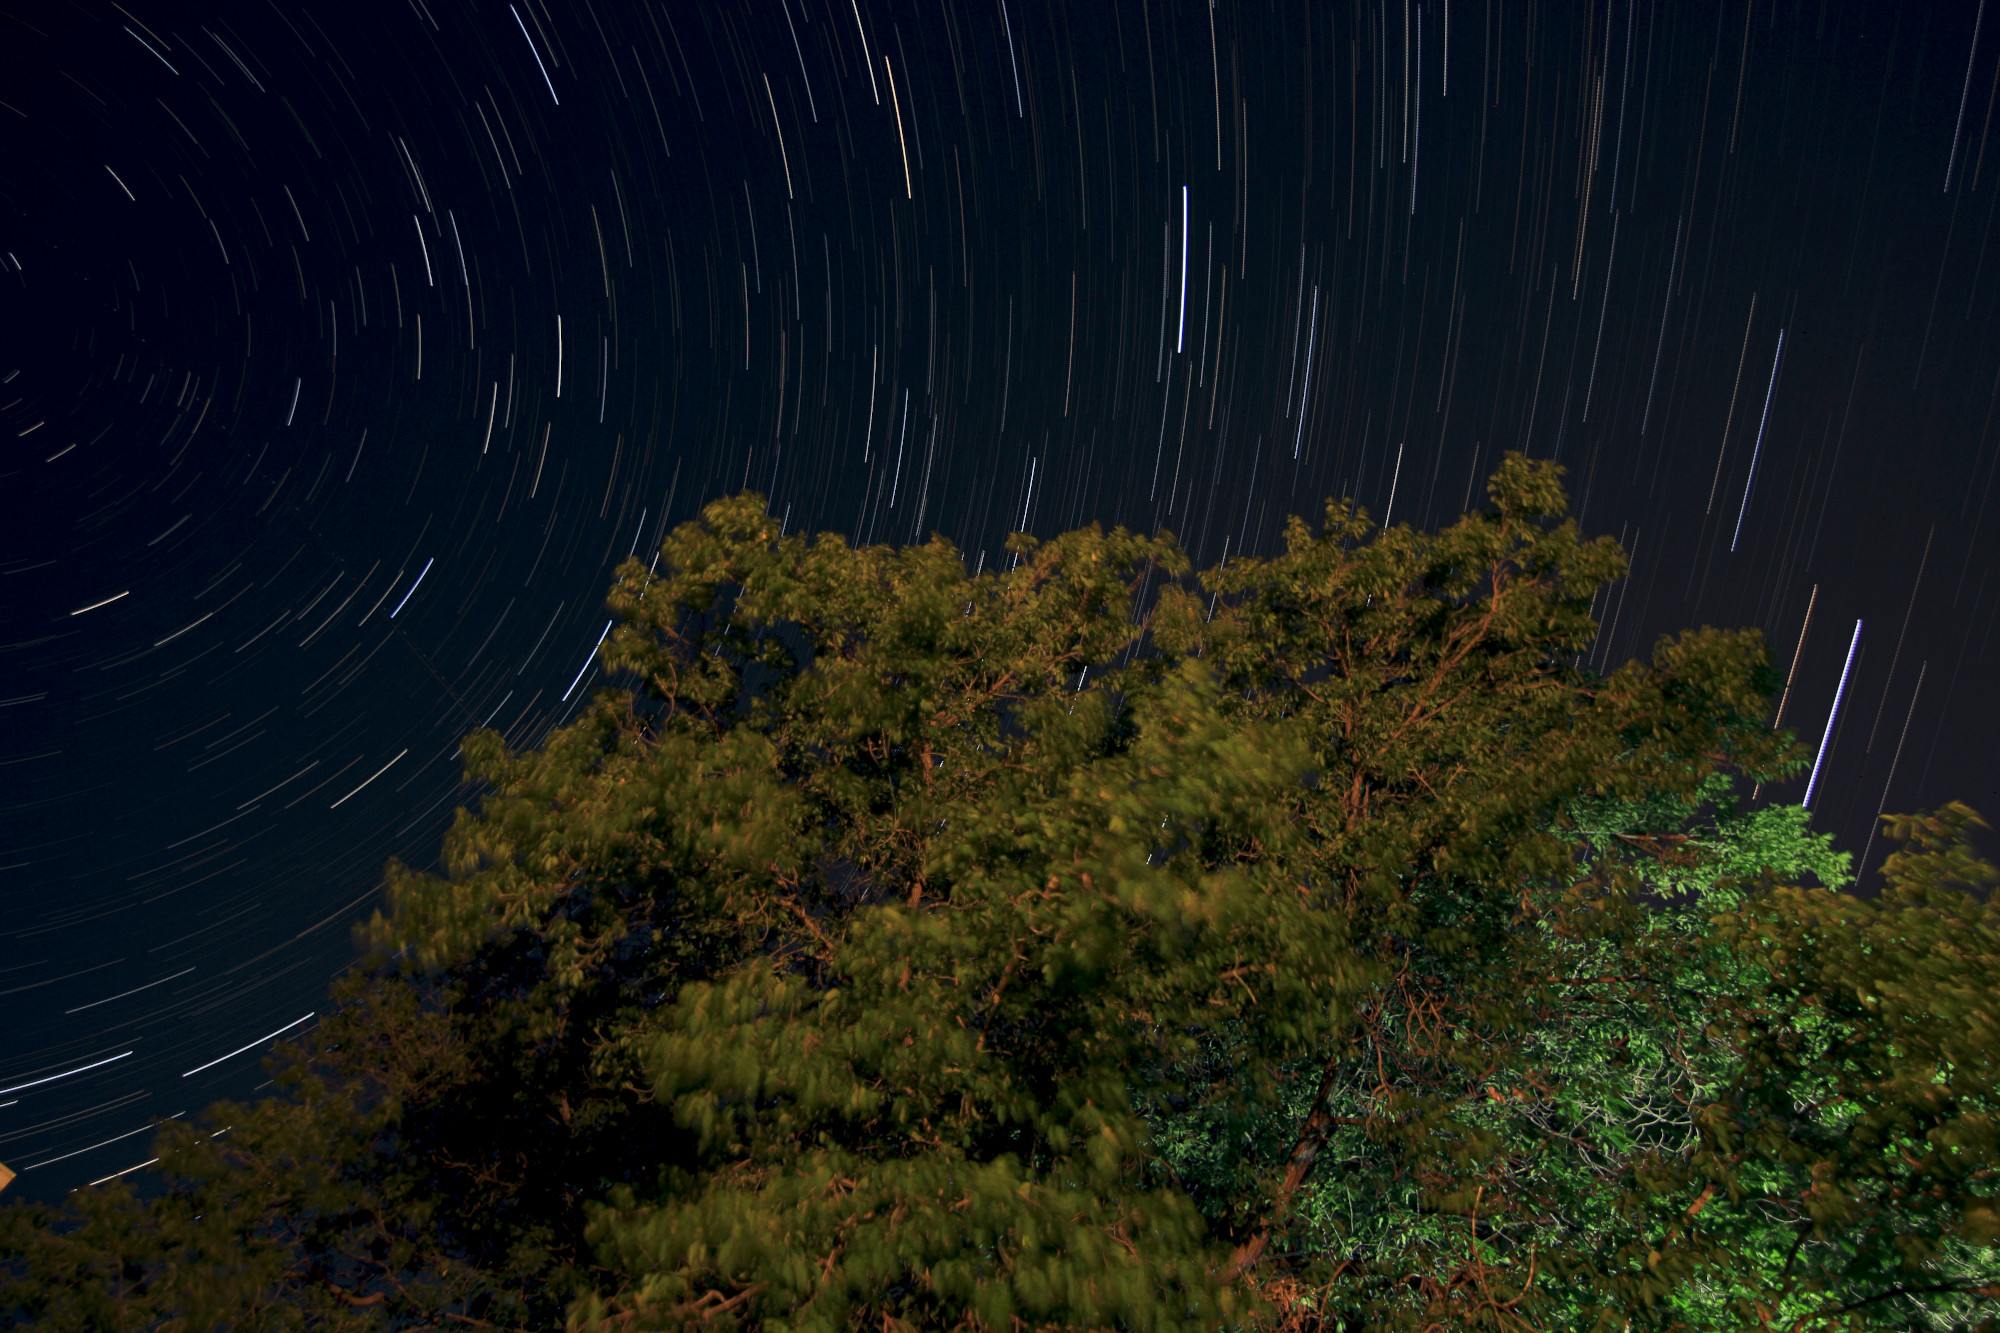 Star trails and a tree